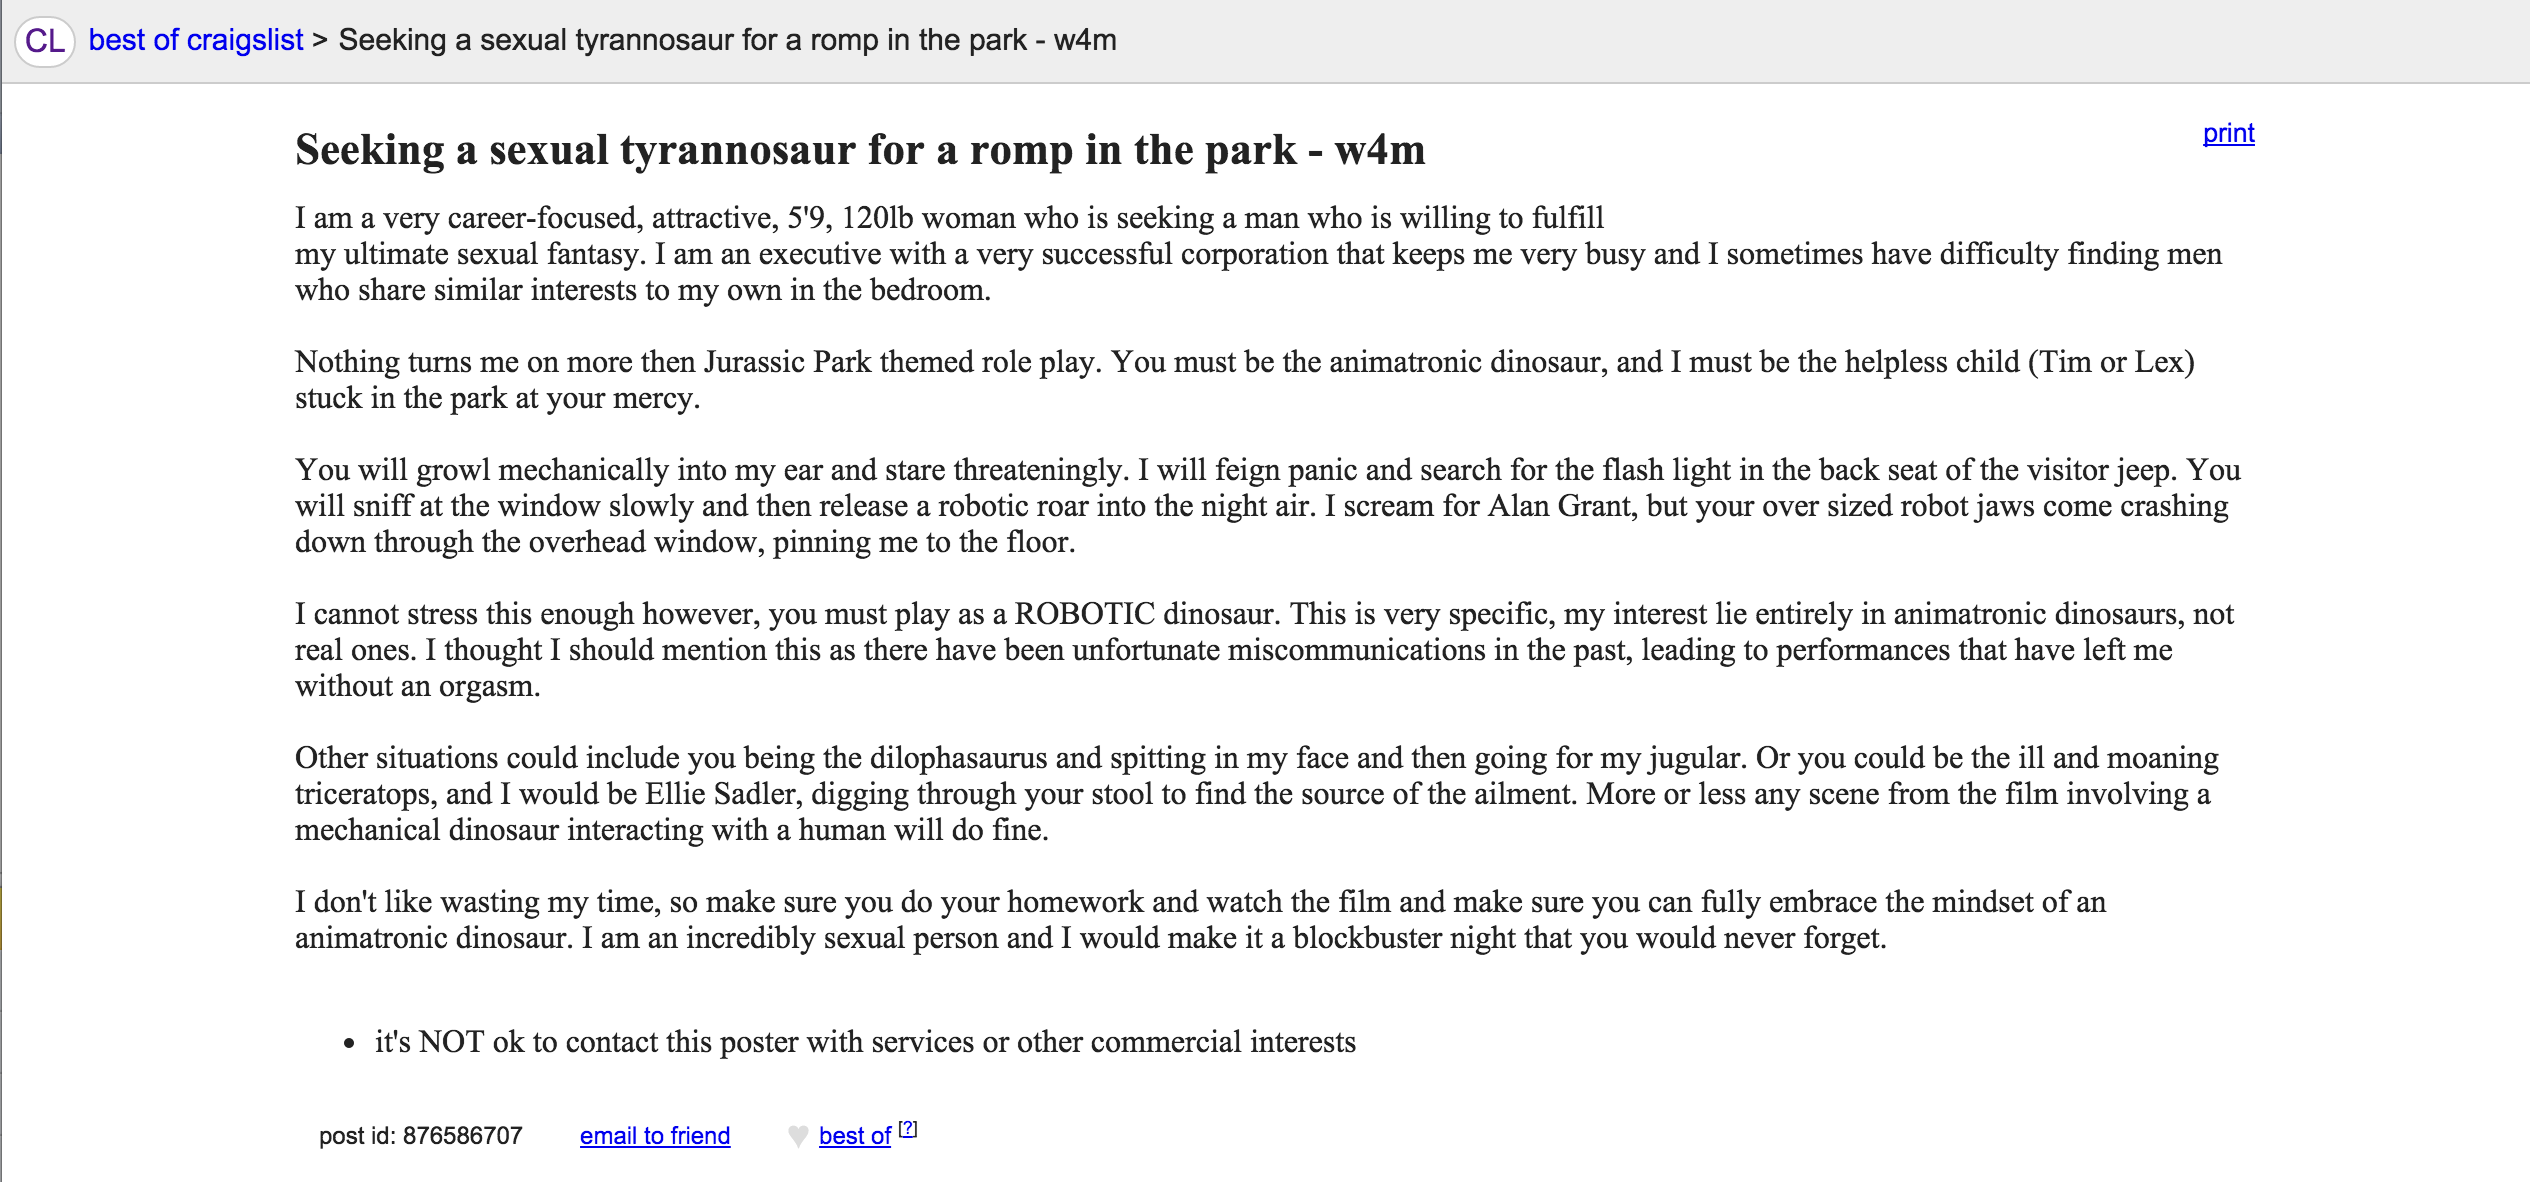 What is w4m on craigslist.